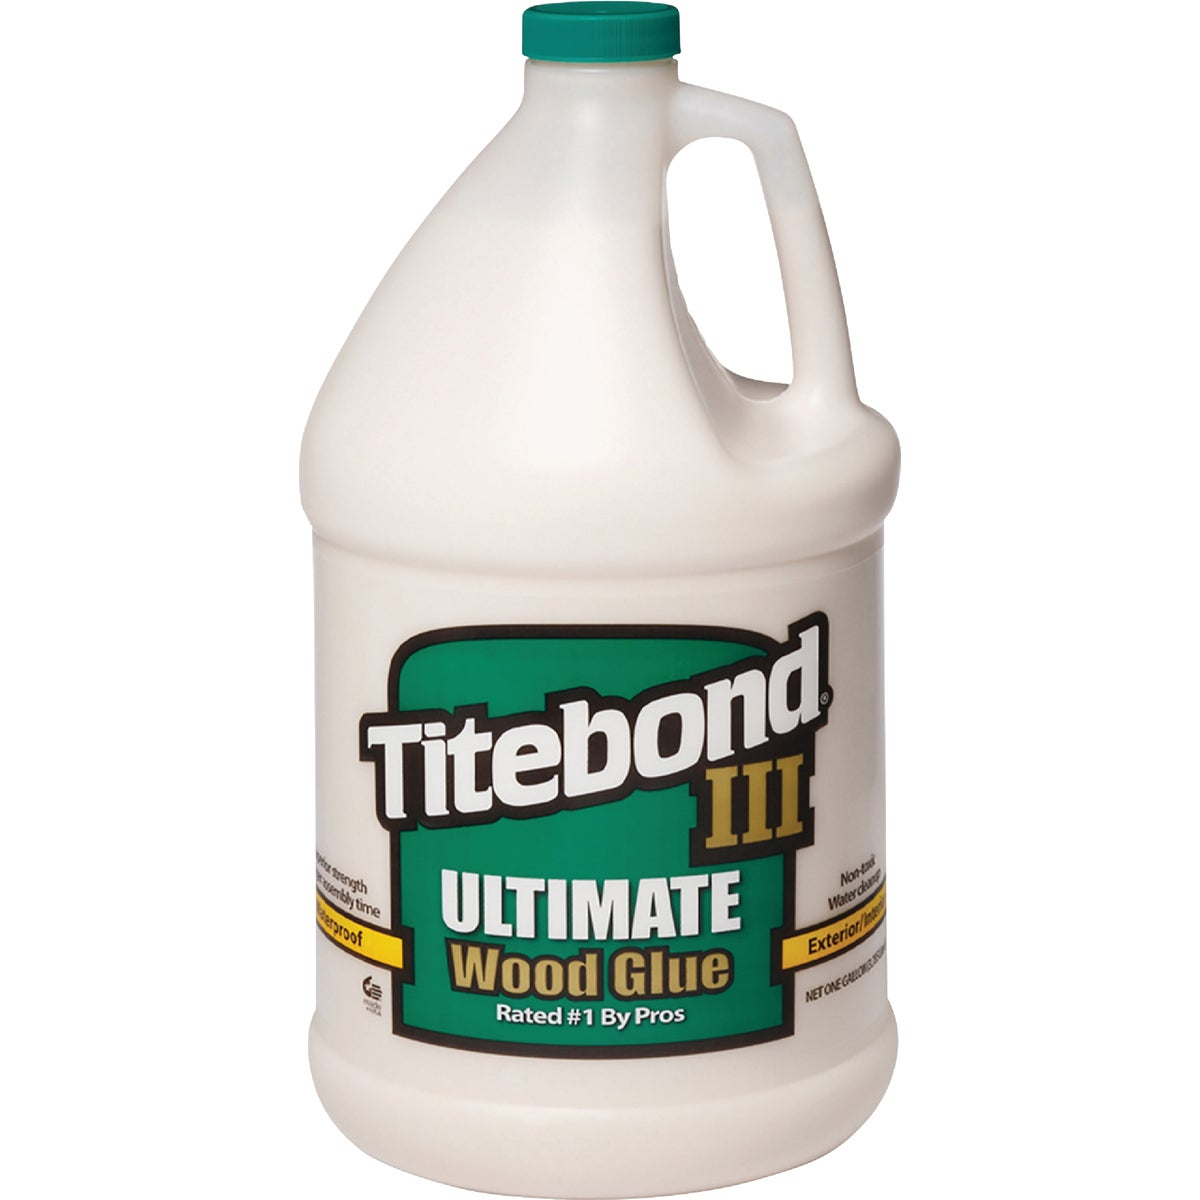 GAL TITEBOND III GLUE - 1416 by Franklin Interl